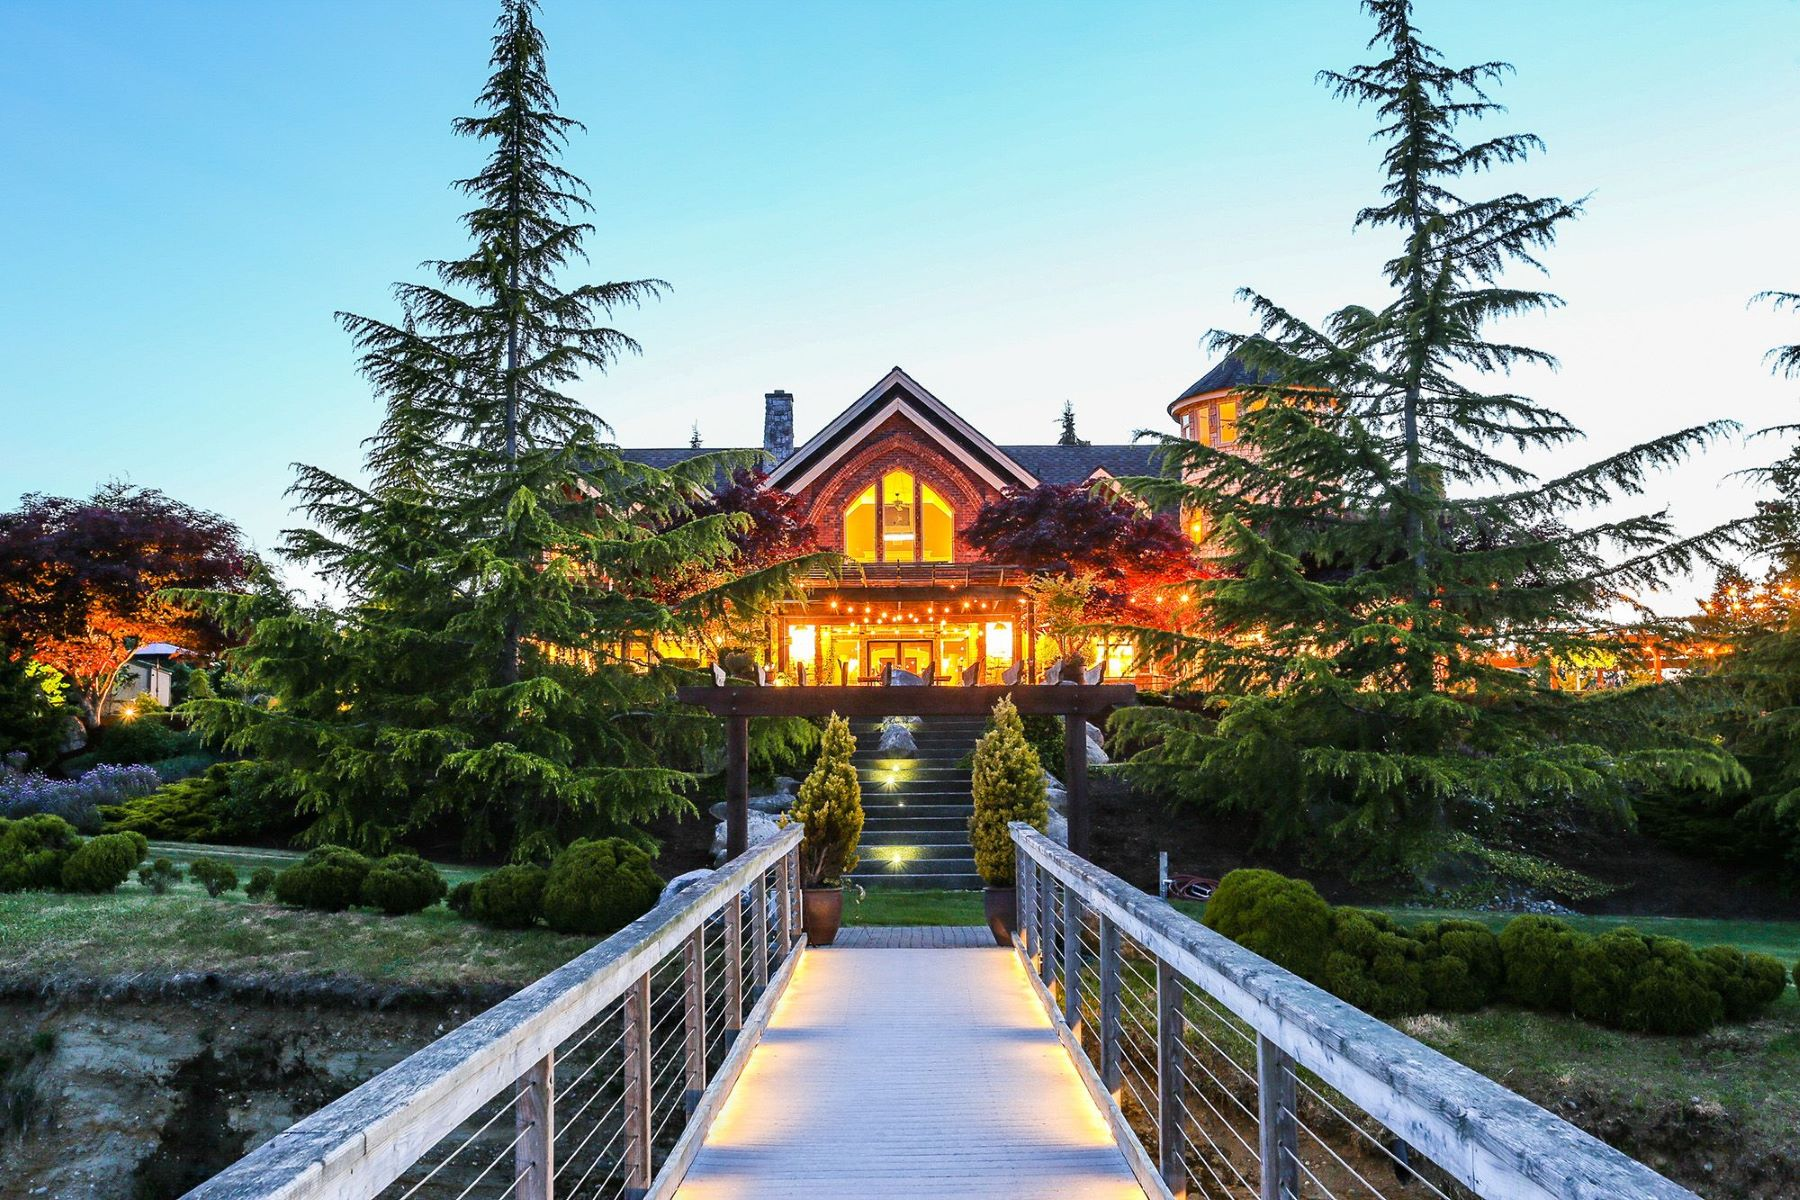 Single Family Homes for Sale at Paradise Passage Estate & Stables 1255 14th Ave Fox Island, Washington 98333 United States